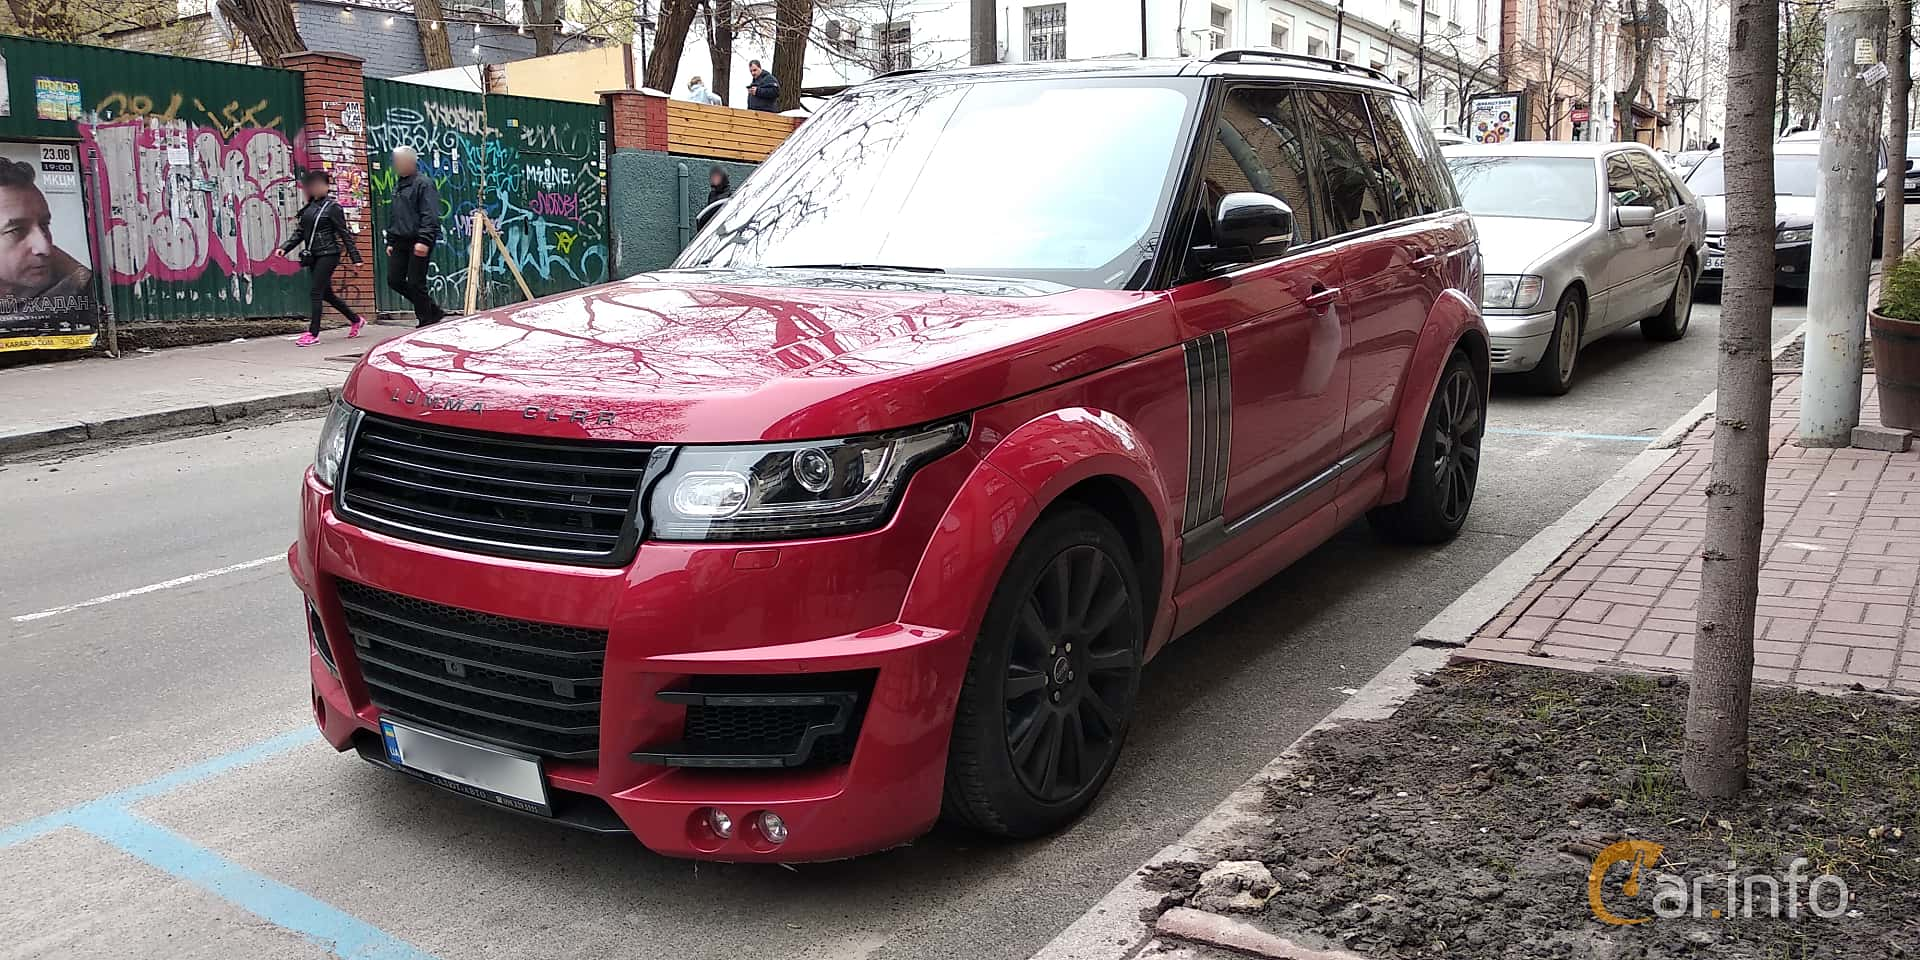 Land Rover Range Rover 5.0 V8 4WD Automatic, 550hp, 2017